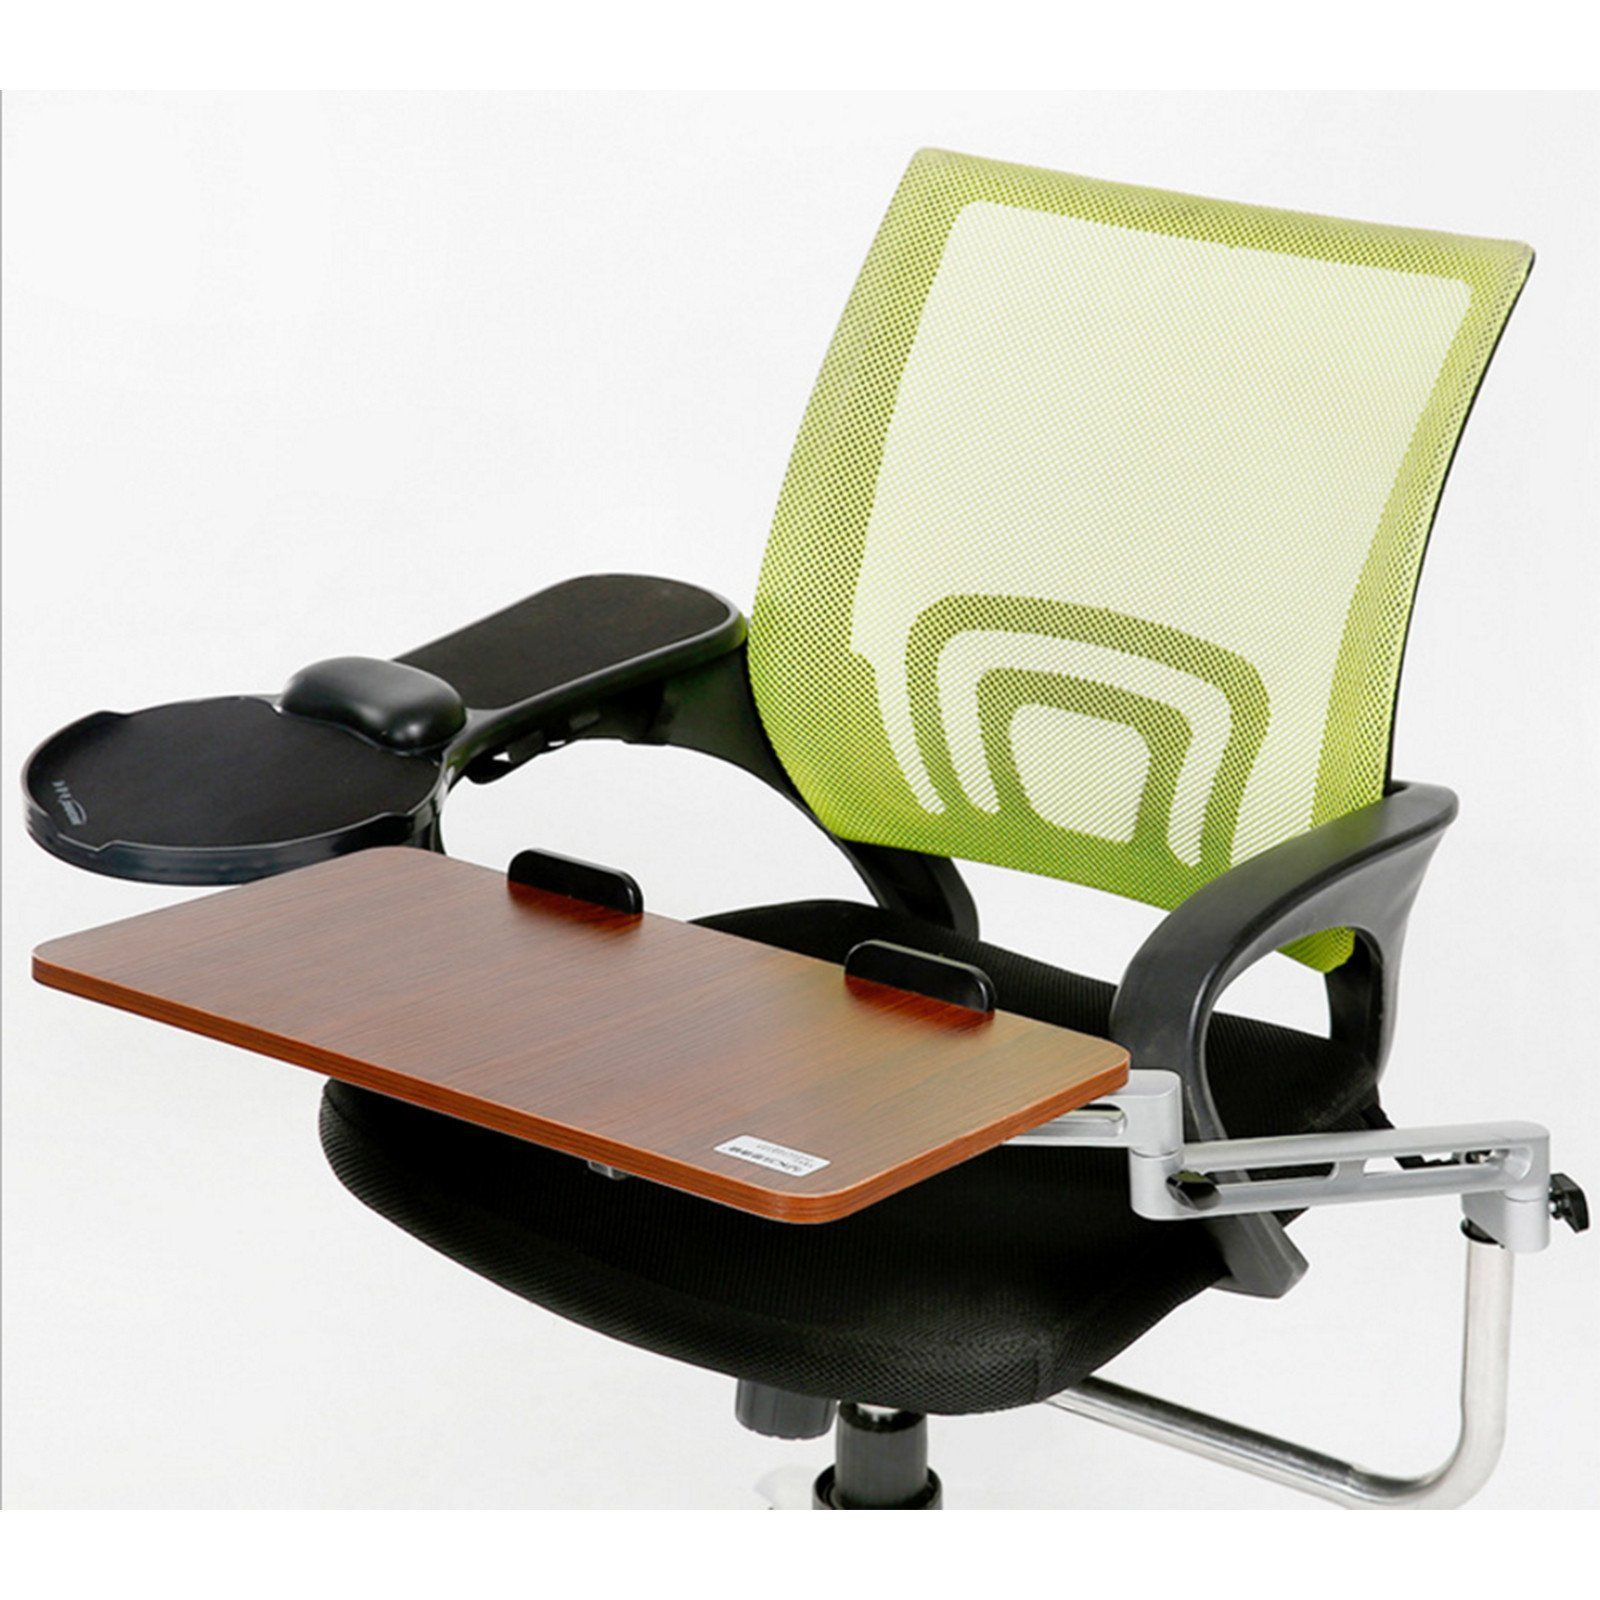 chair computer stand wooden adirondack chairs lowes ergonomic mount laptop keyboard mouse tray system